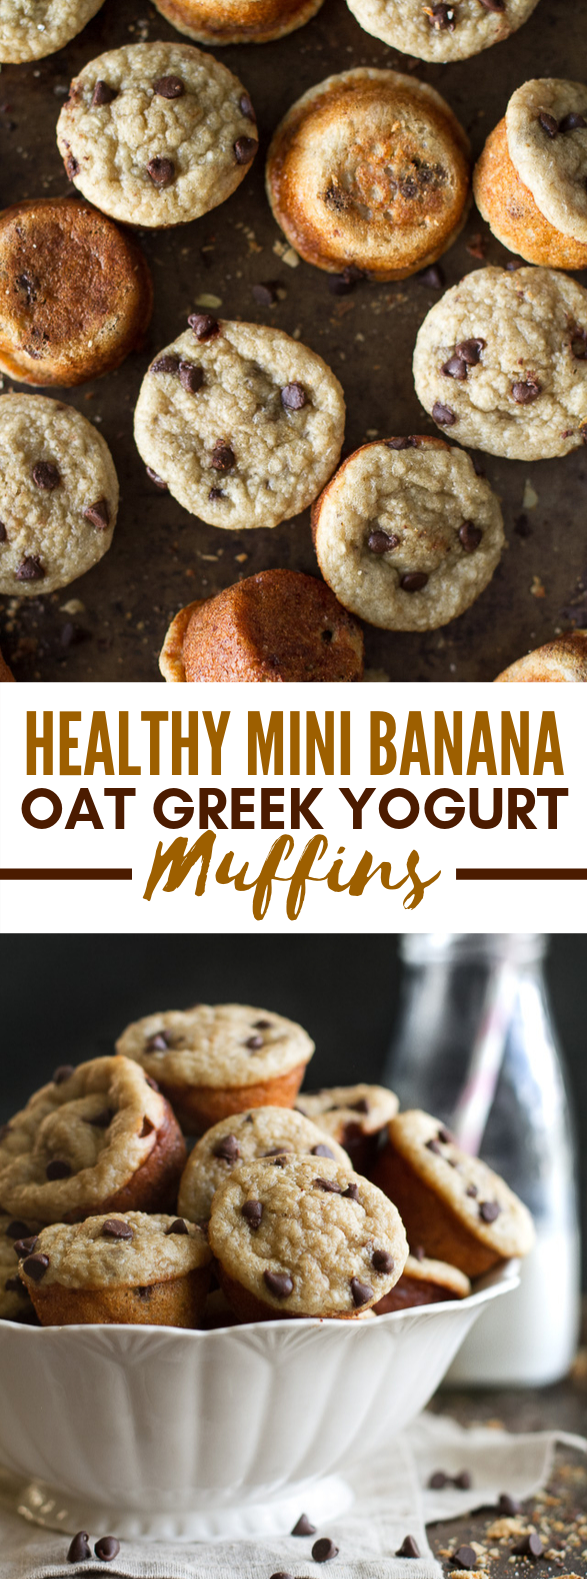 MINI BANANA OAT GREEK YOGURT MUFFINS #healthy #lowcarb